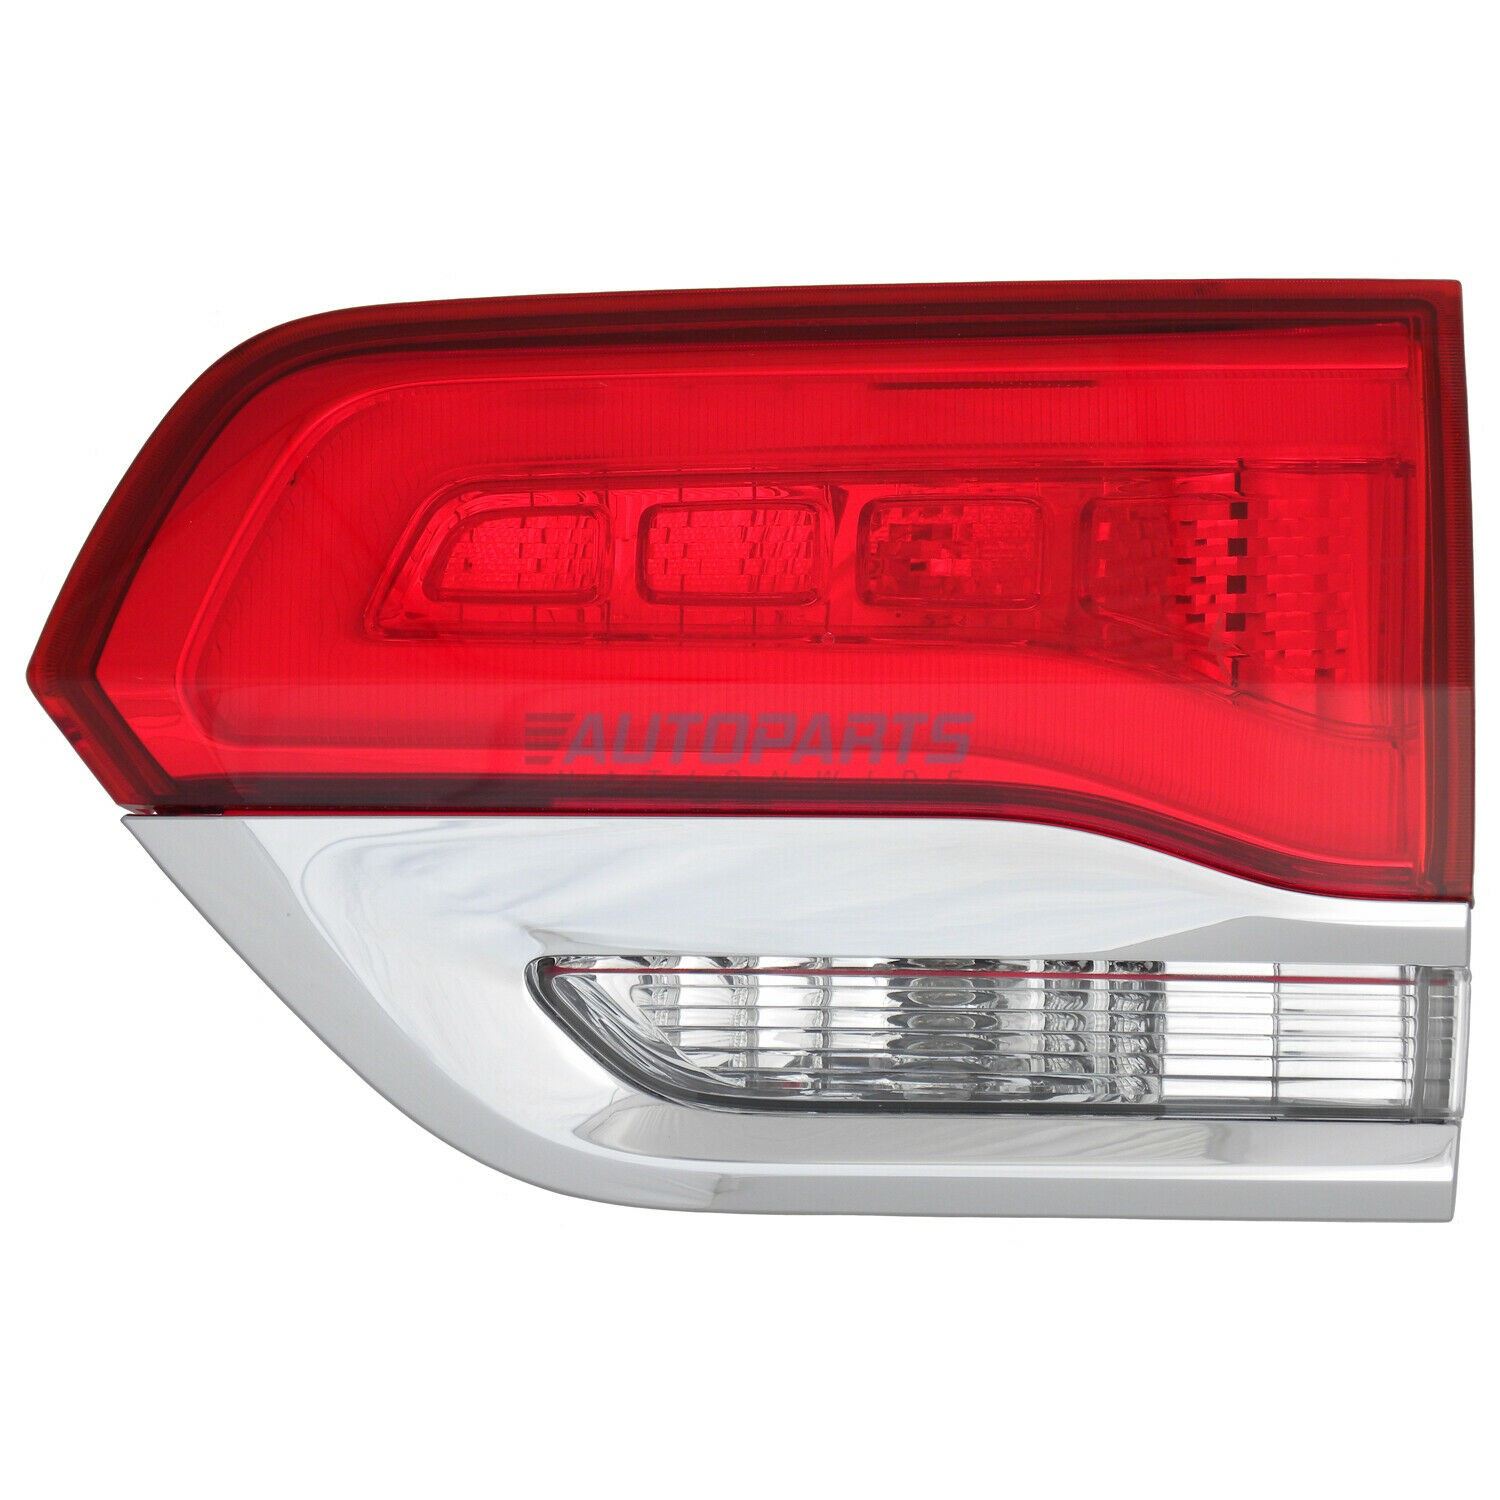 New Right Tail Lamp Embly Fits 2017 Jeep Grand Cherokee Ch2803105